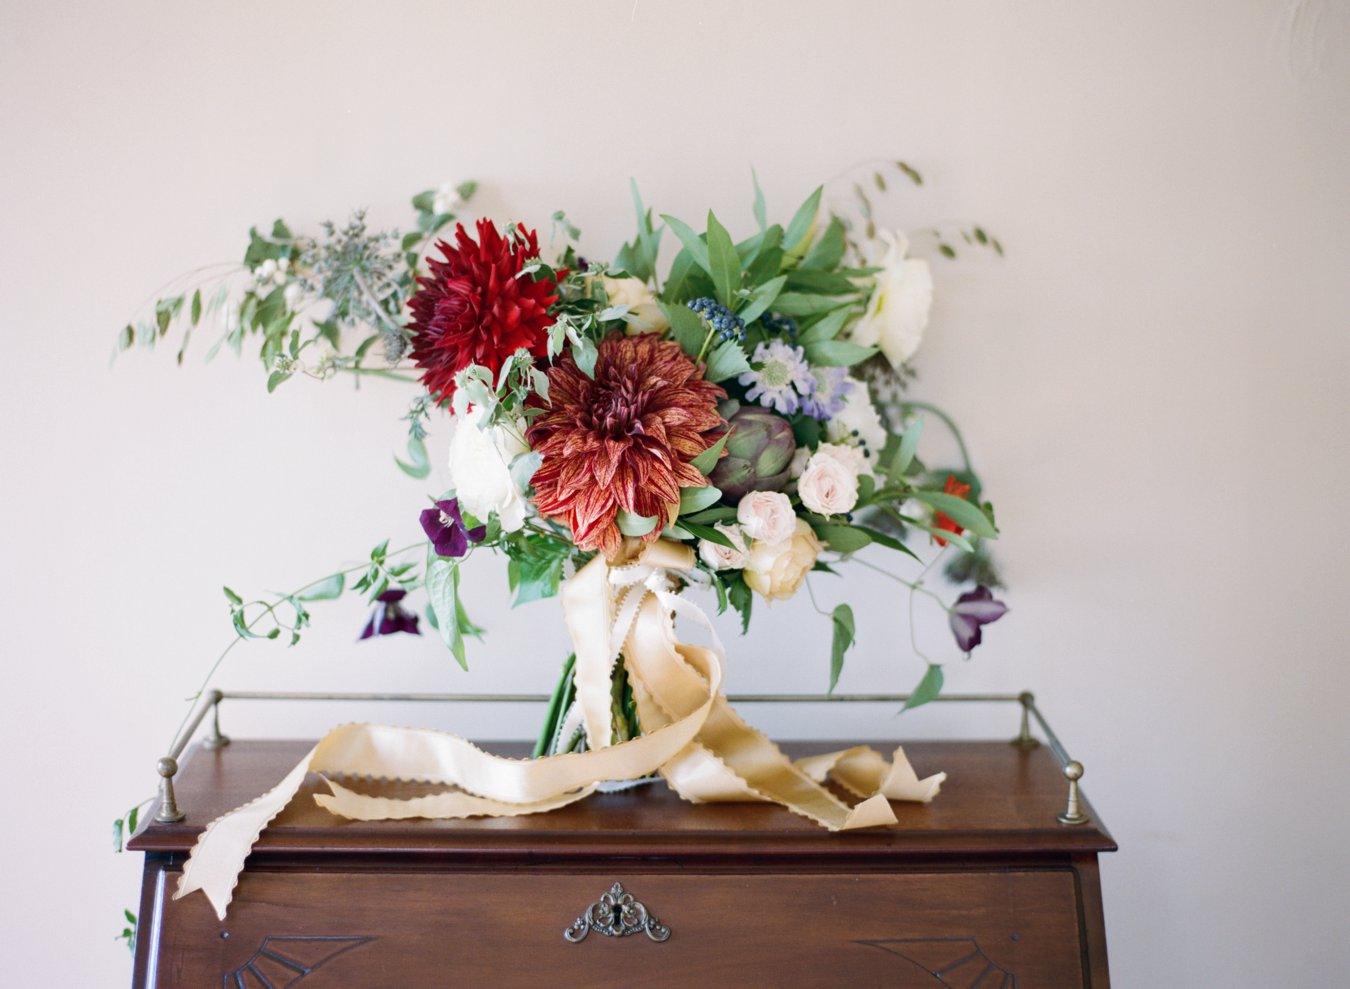 The Day's Design Floral | Felt Mansion Wedding | Cory Weber Photography